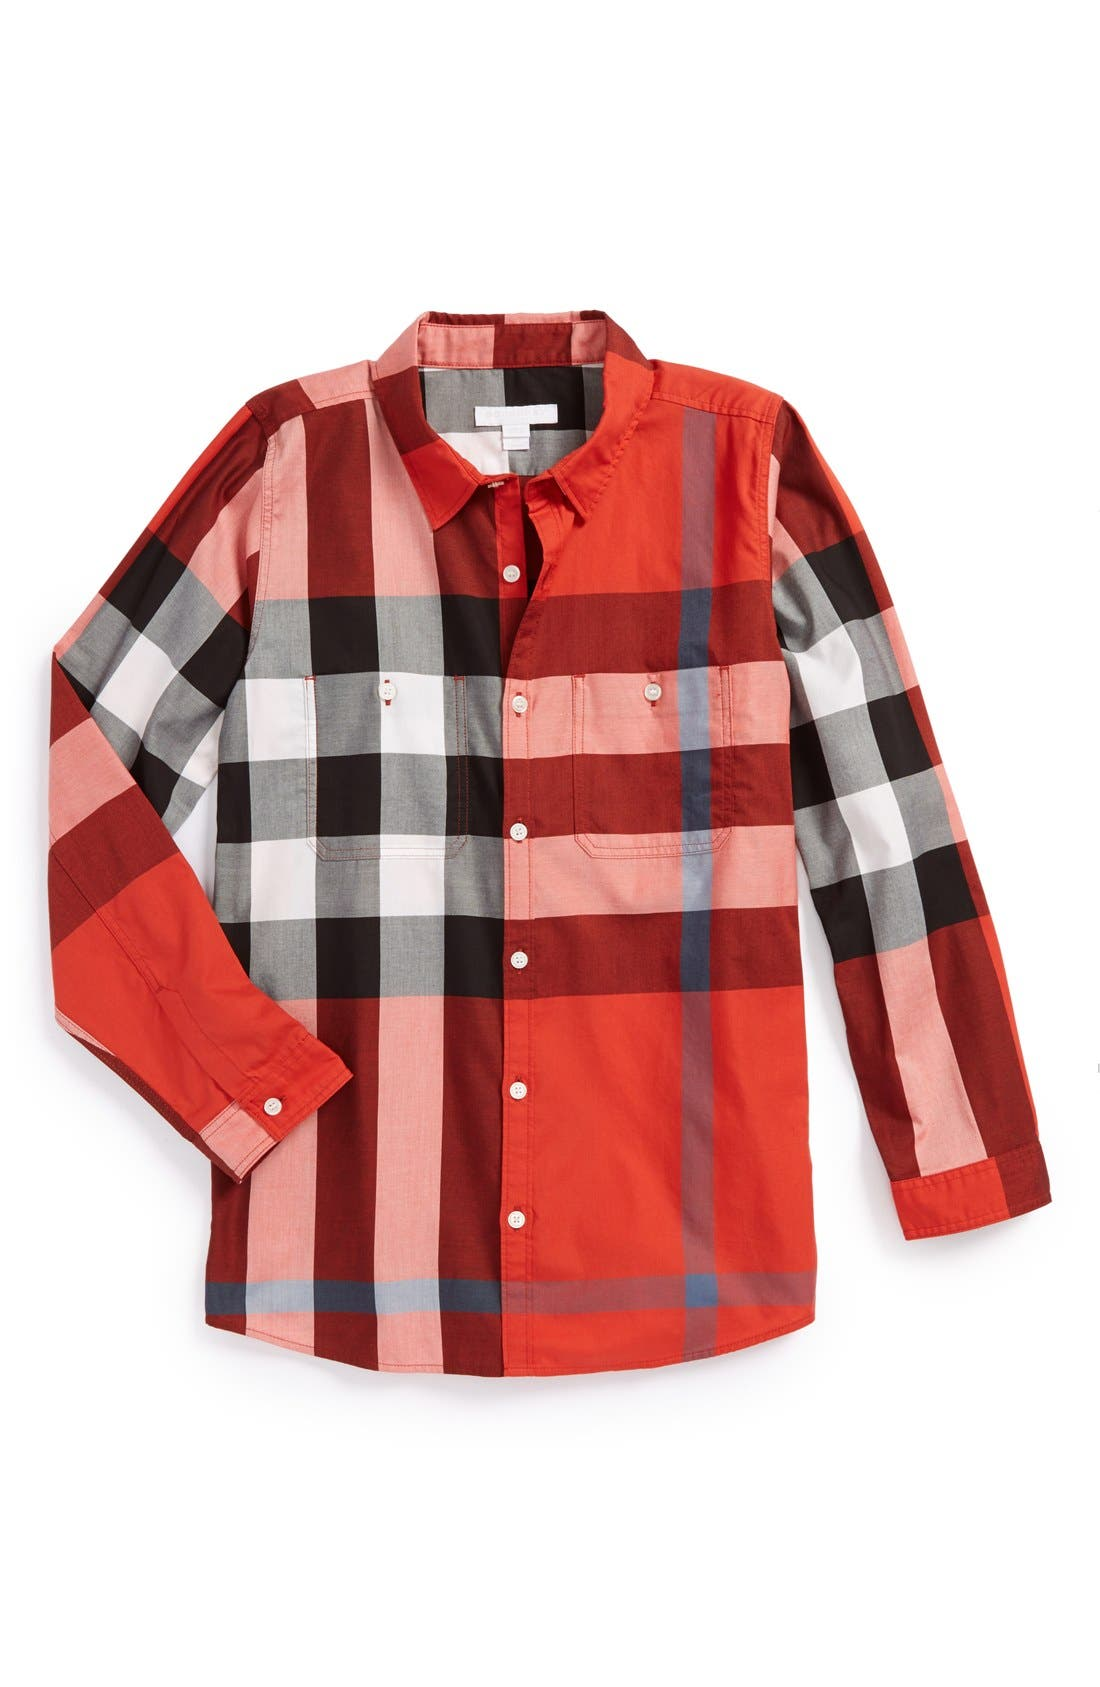 Alternate Image 1 Selected - Burberry Check Print Woven Shirt (Toddler Boys, Little Boys & Big Boys)